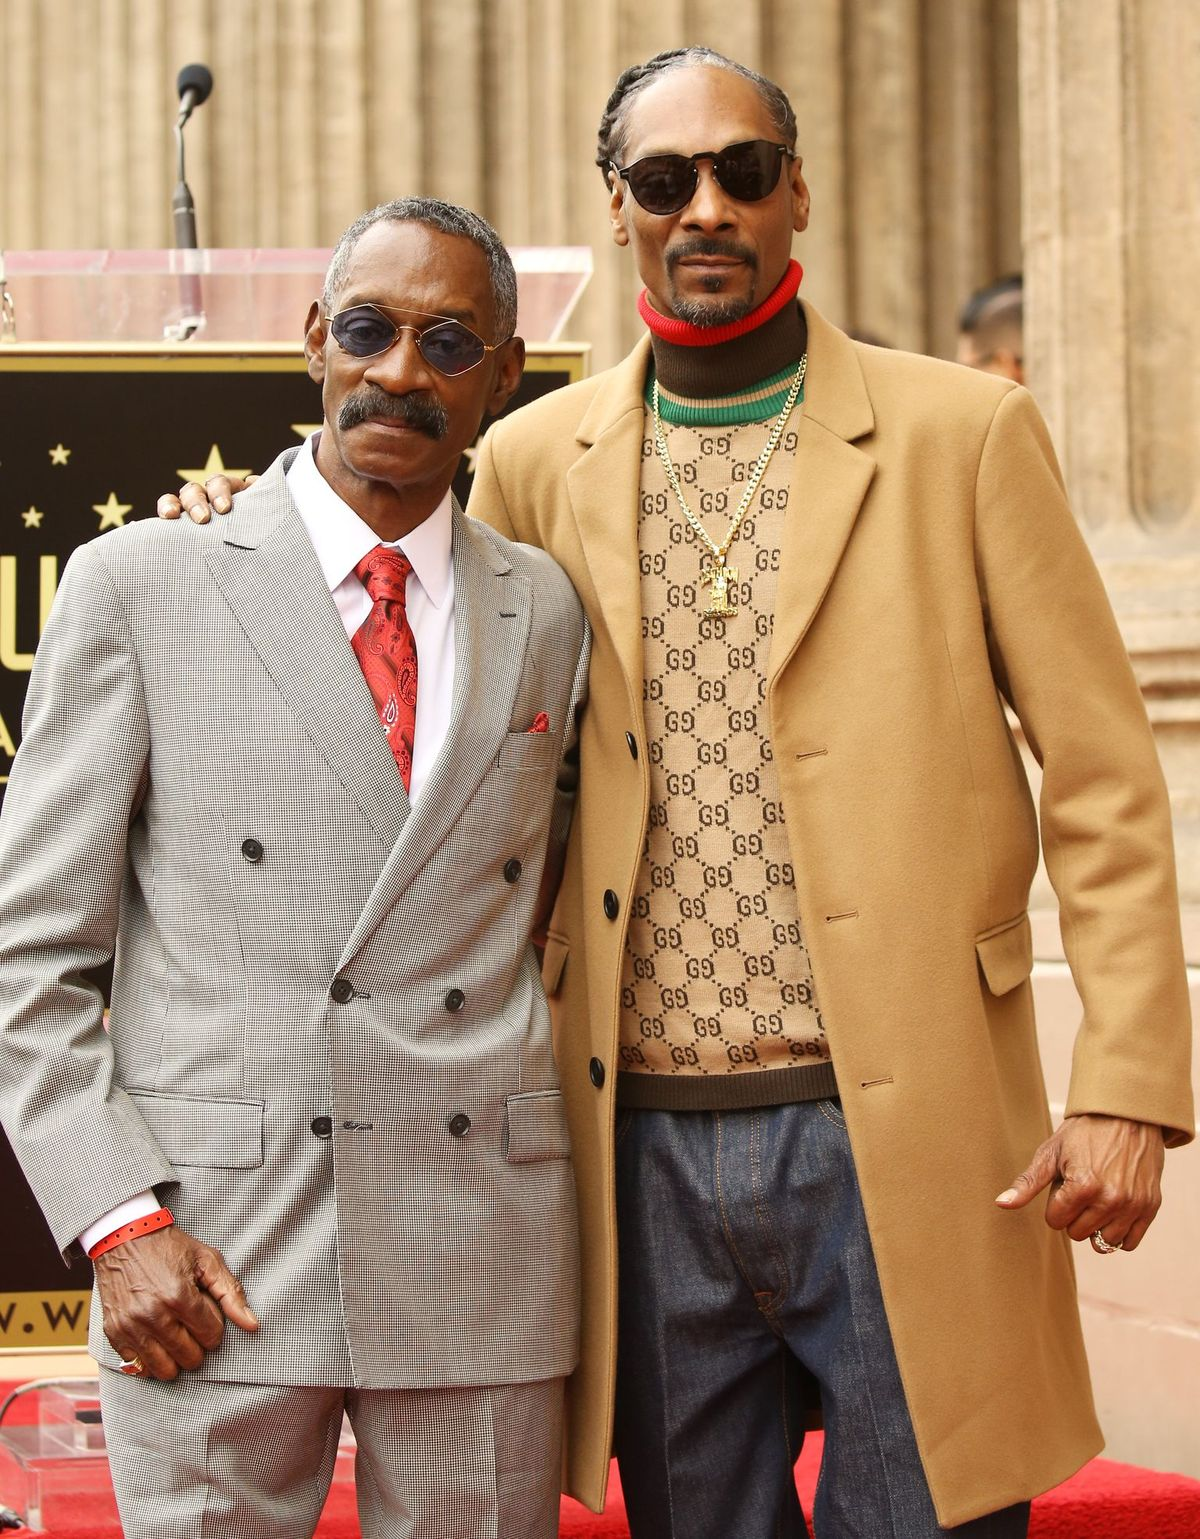 Snoop Dogg and his father at the ceremony honoring Snoop Dogg with a Star on The Hollywood Walk of Fame held on November 19, 2018 | Source: Getty Images